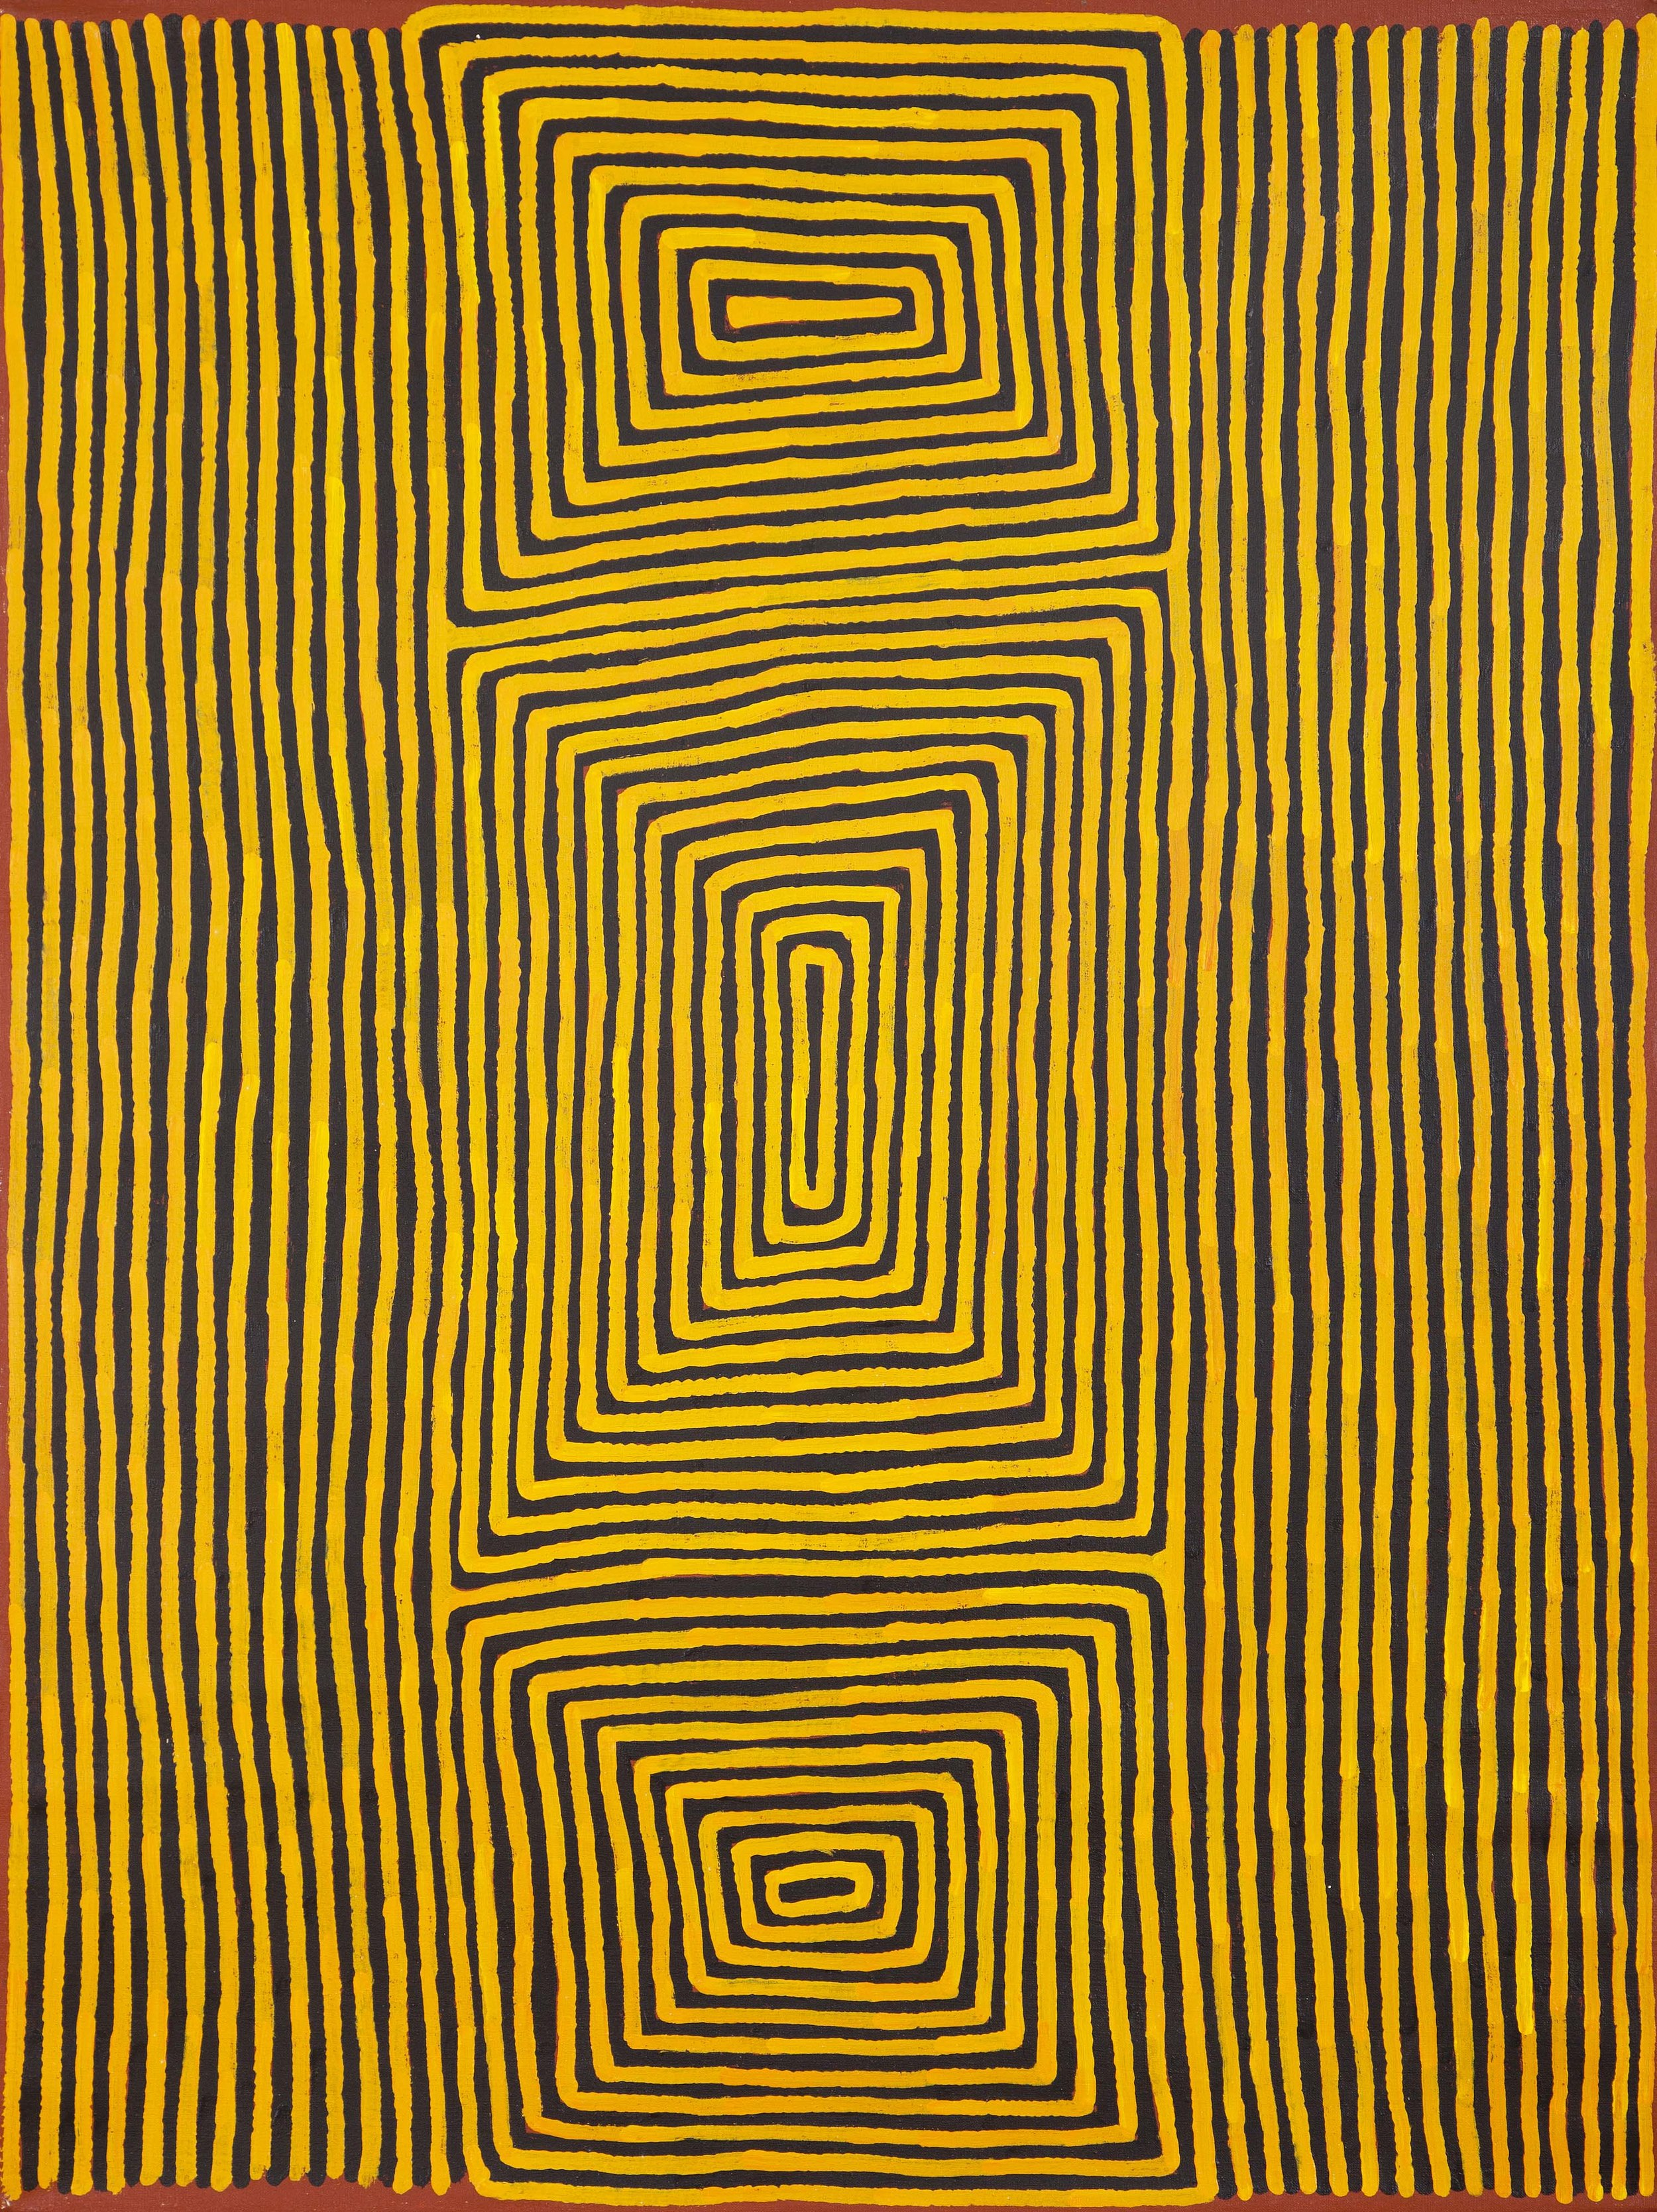 """Ronnie Tjampitjinpa  Perentie Dreaming at Walungurru, 2013  48"""" x 36"""" (122 x 91 cm)  Acrylic on Belgian linen   EMAIL INQUIRY"""